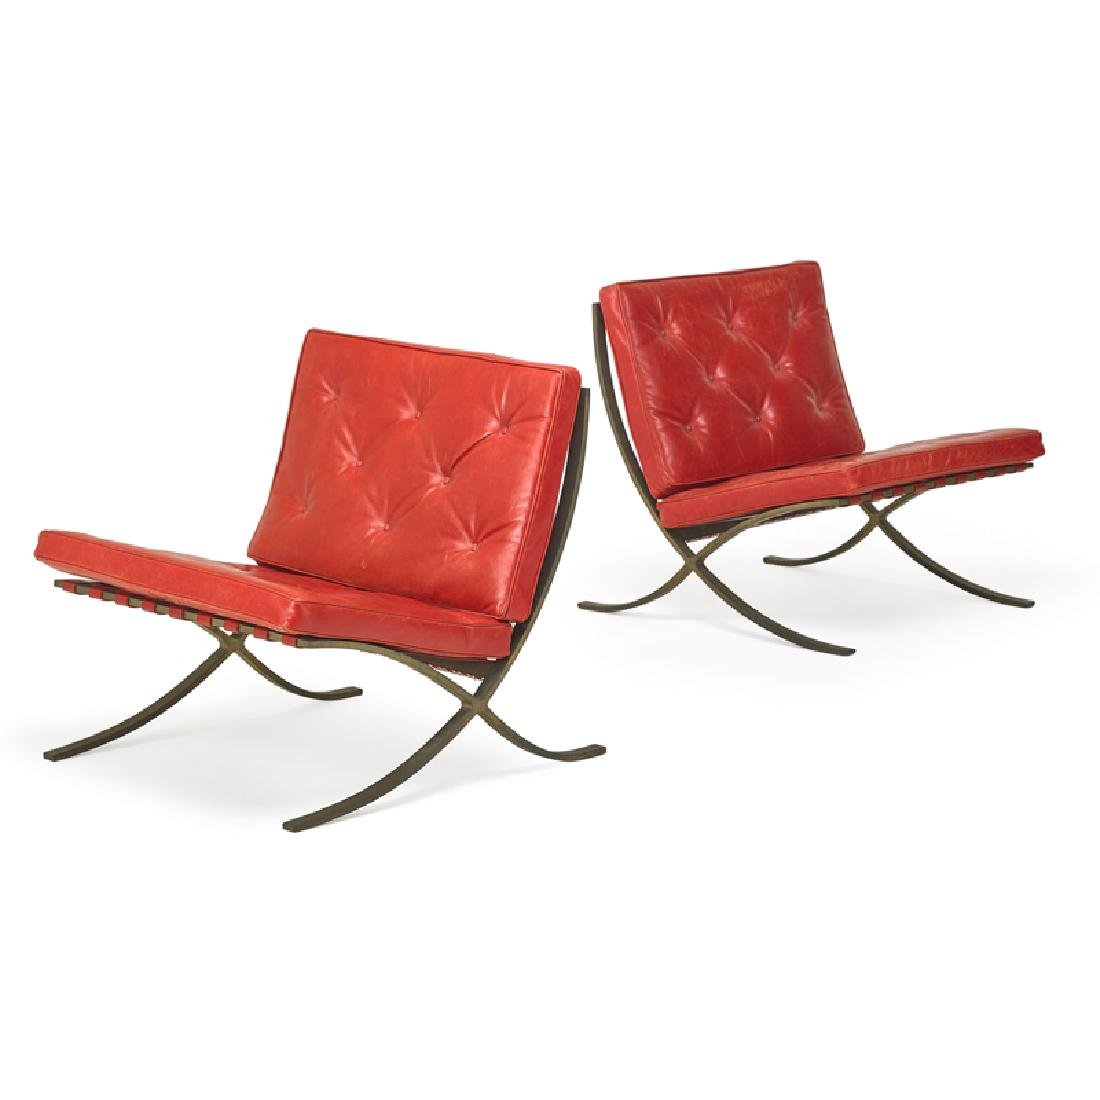 LUDWIG MIES VAN DER ROHE Pair of Barcelona chairs